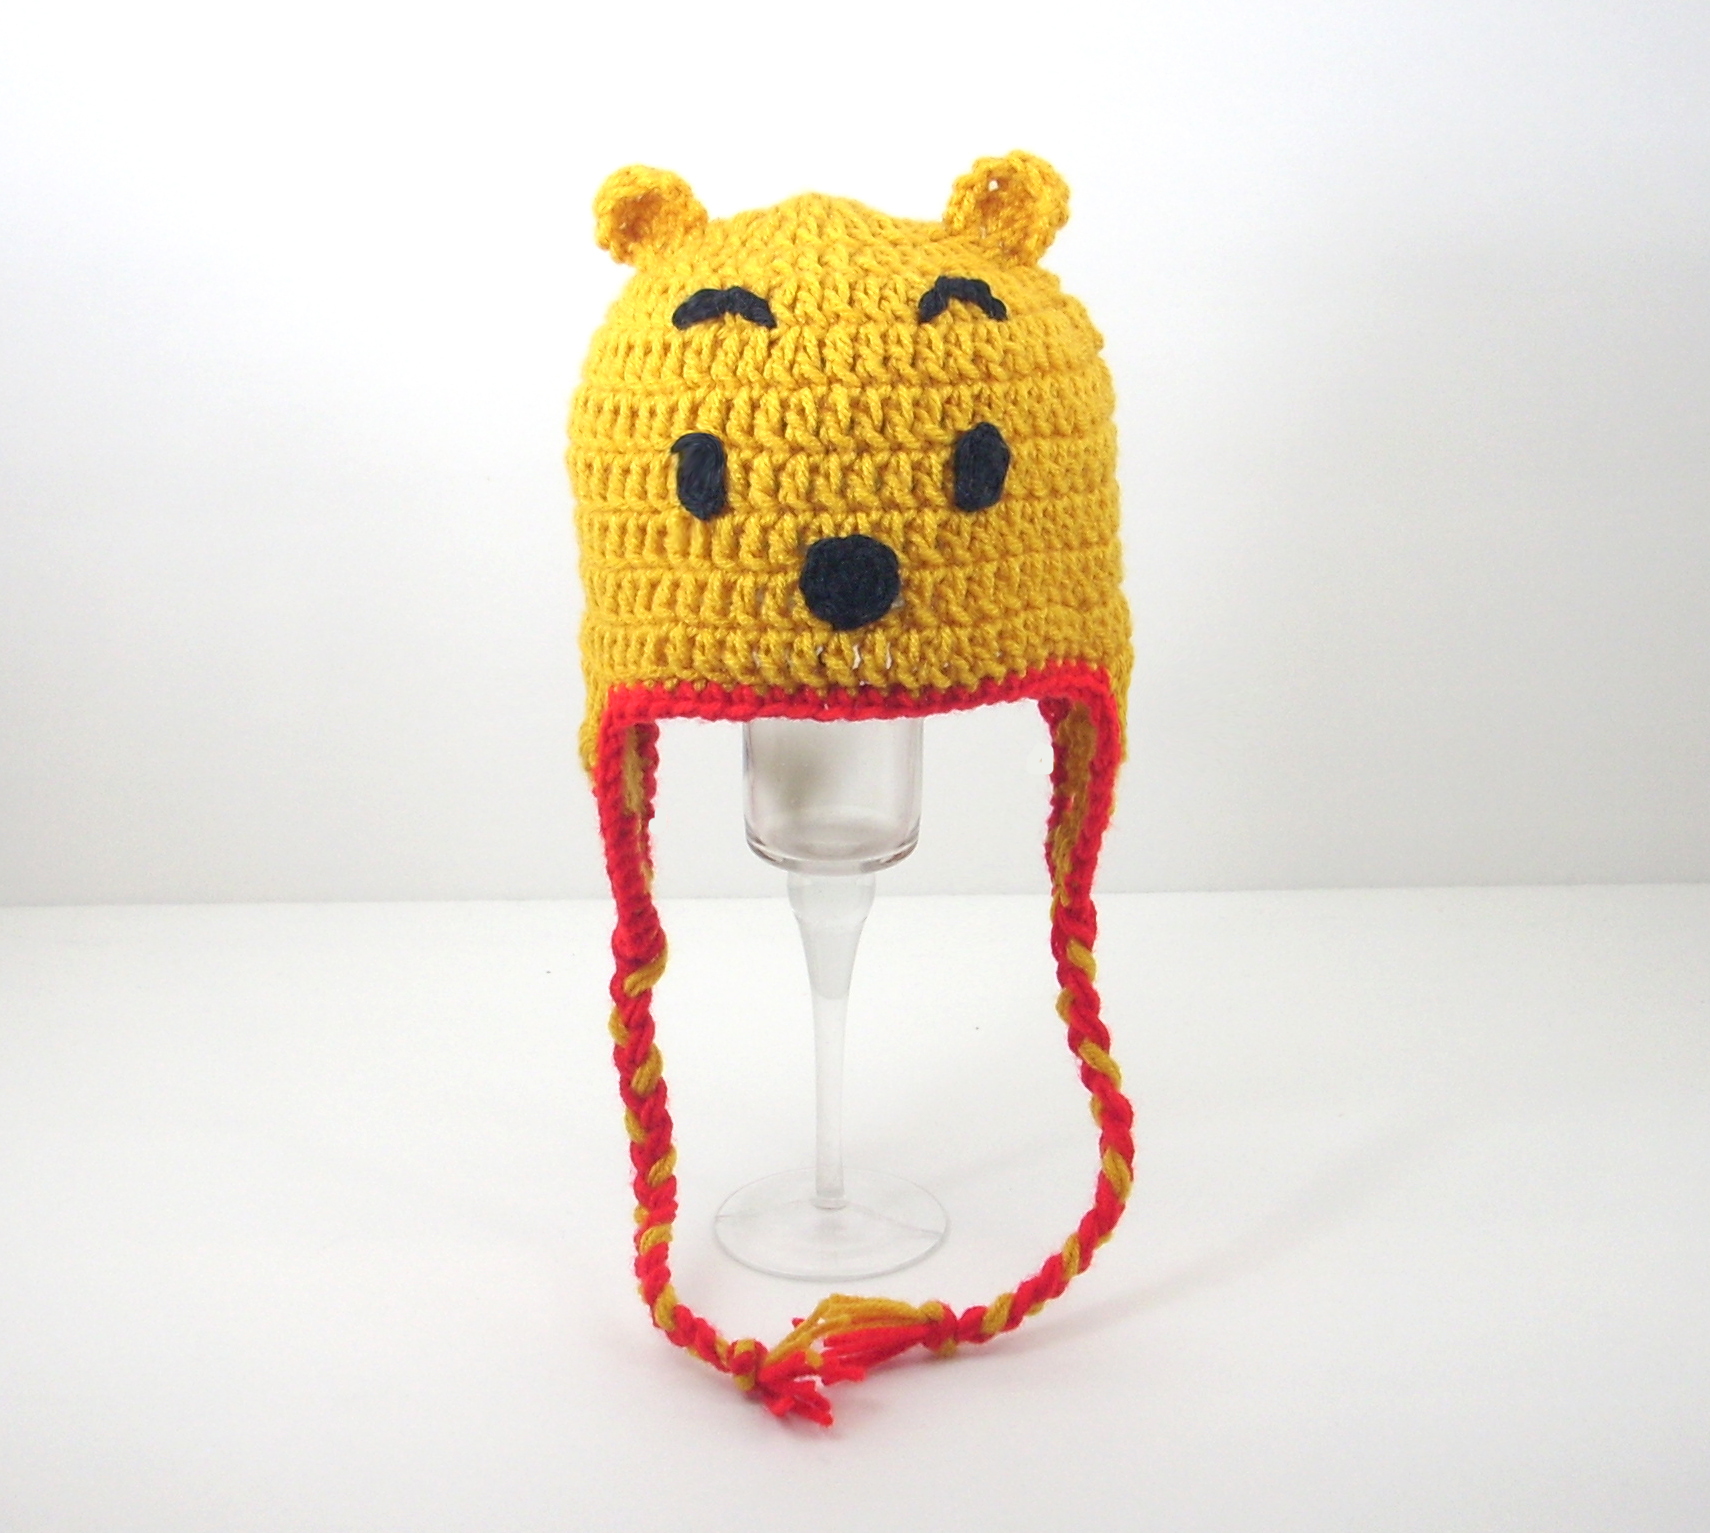 Pooh Bear Earflap Hat from Winnie the Pooh